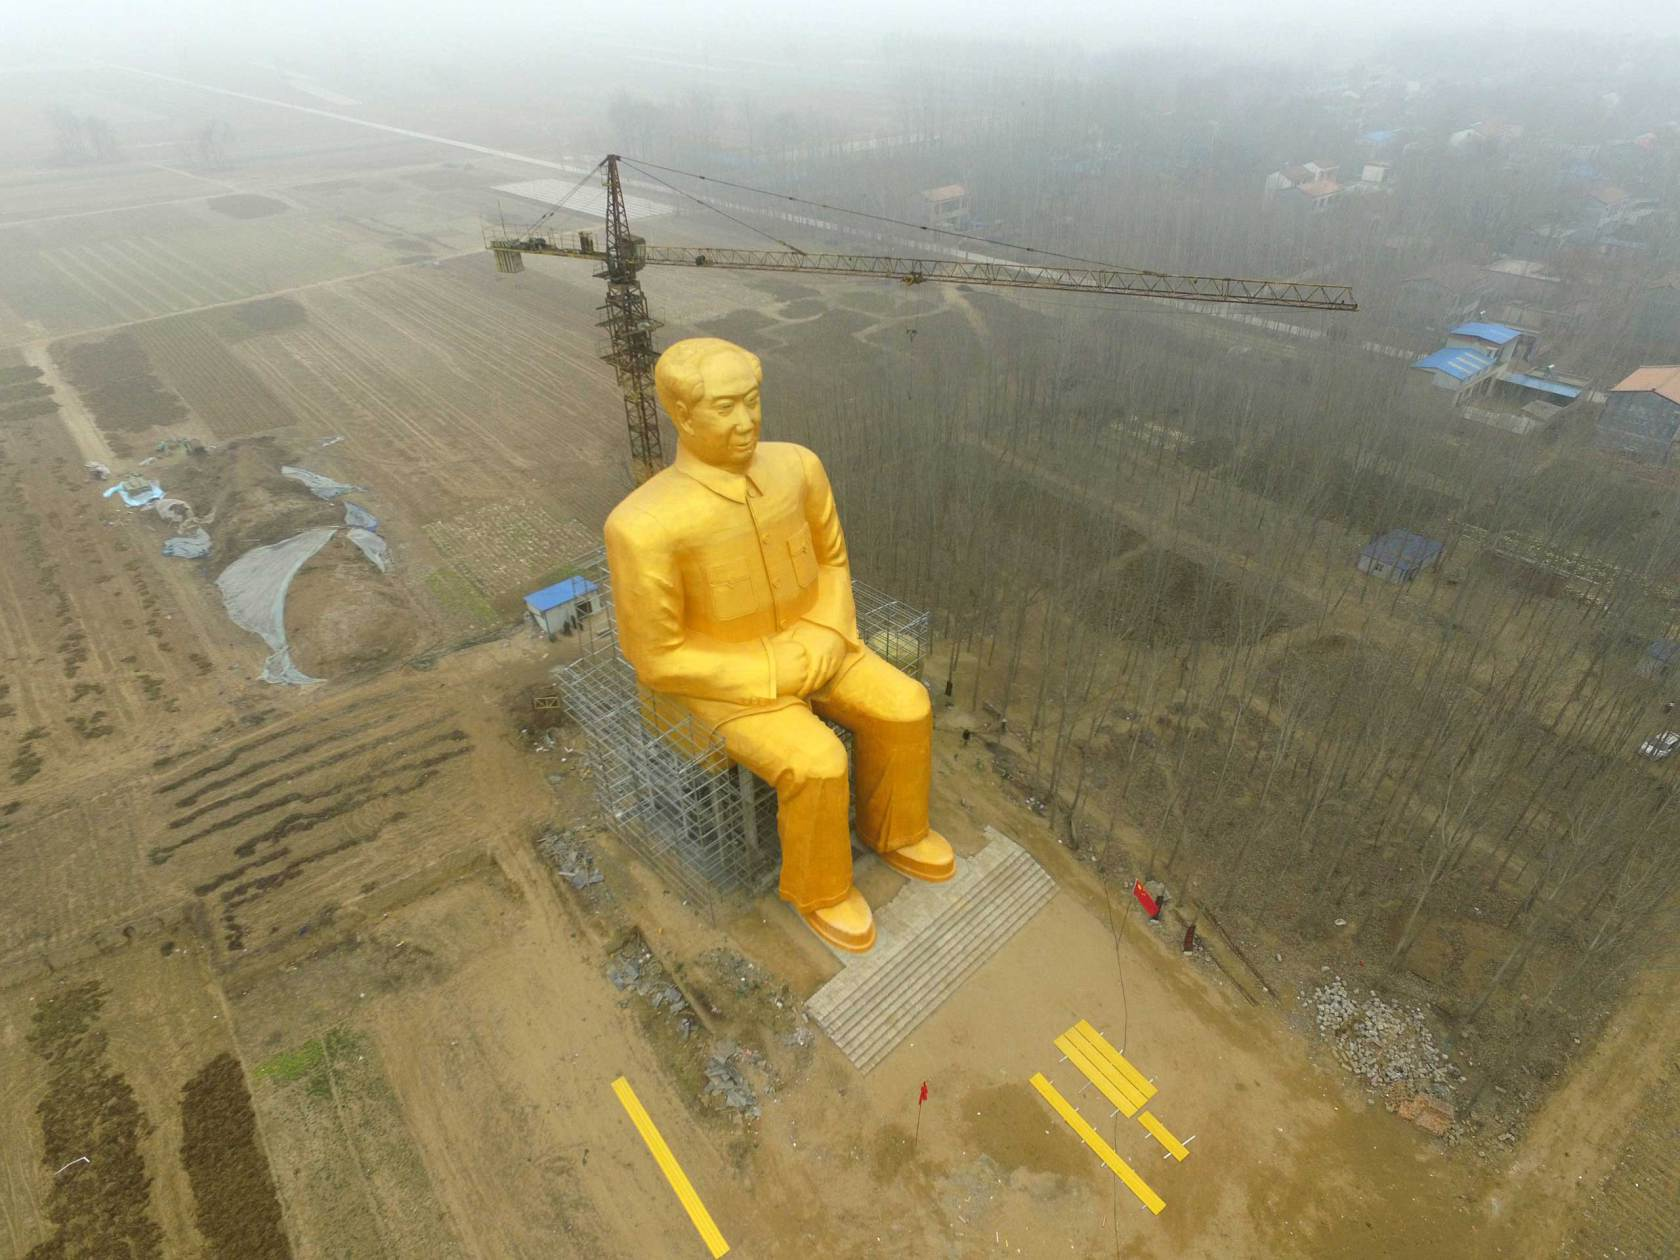 A huge statue of Chairman Mao Zedong, 36.6 meters in height, is seen under construction at Zhushigang village in Tongxu County, China, on Jan. 4. (ChinaFotoPress via Getty Images)